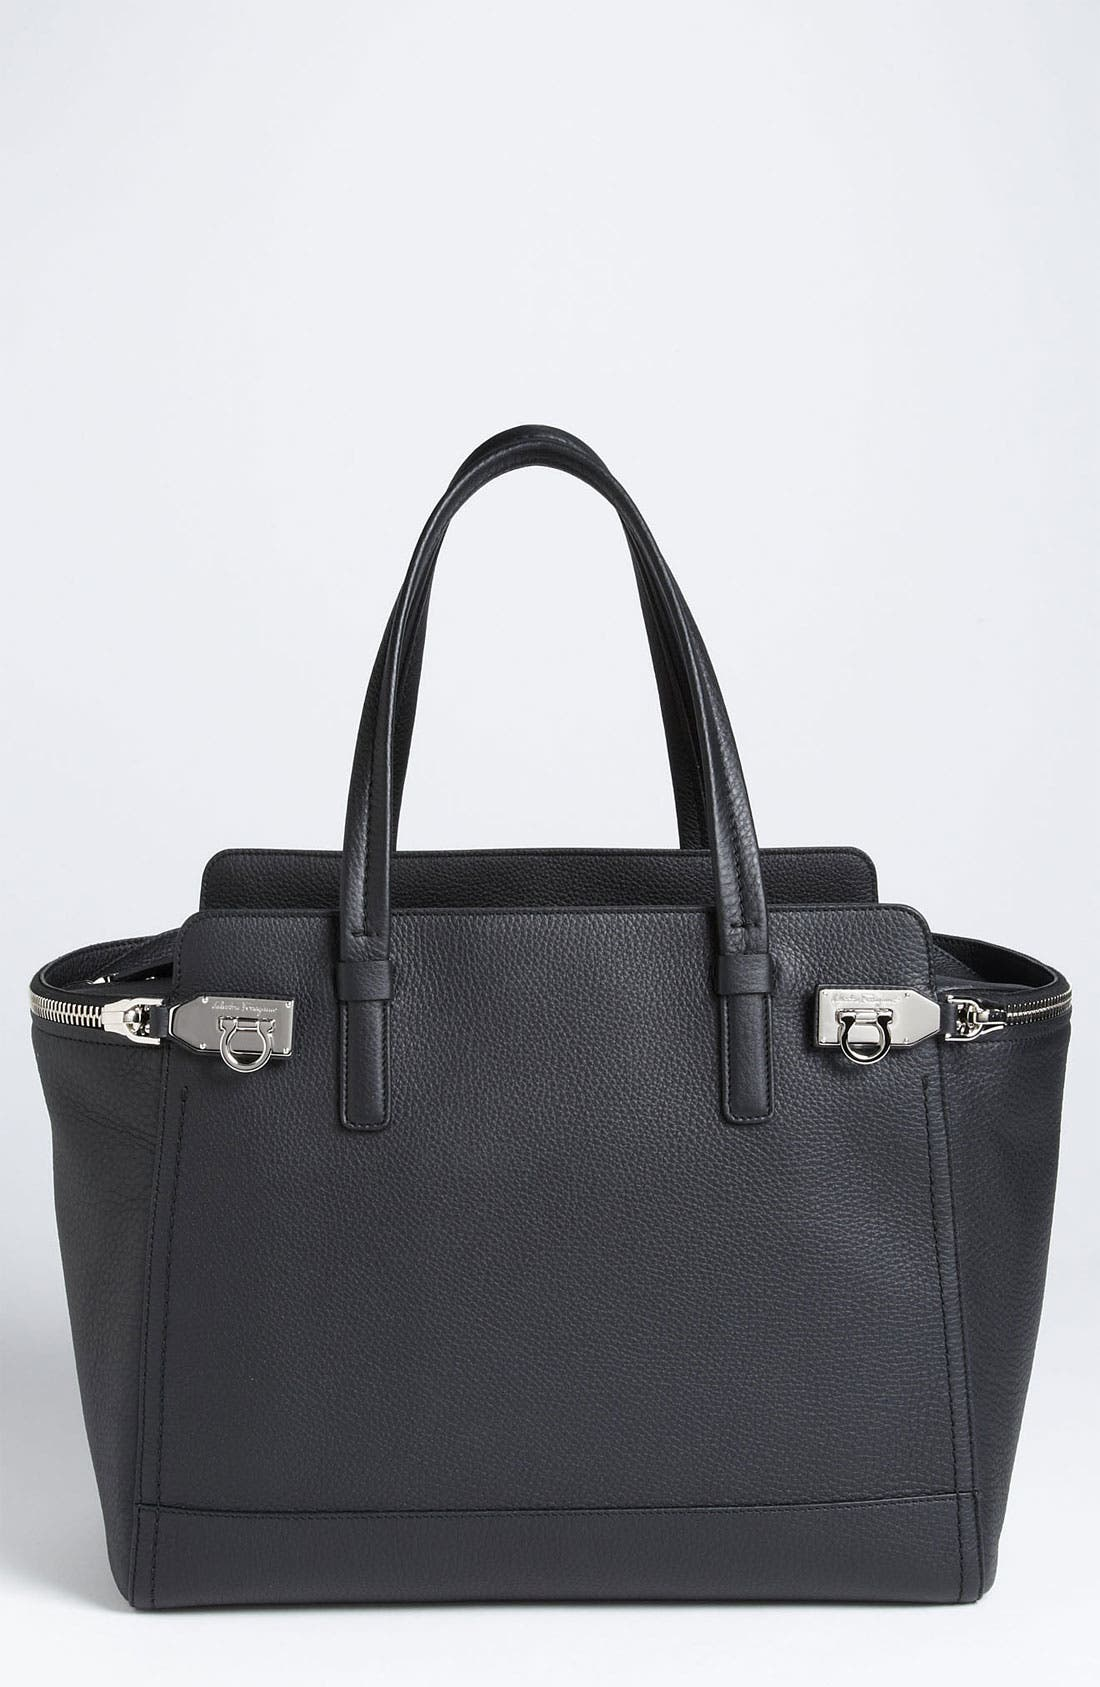 Alternate Image 1 Selected - Salvatore Ferragamo 'Arianna - Medium' Leather Satchel